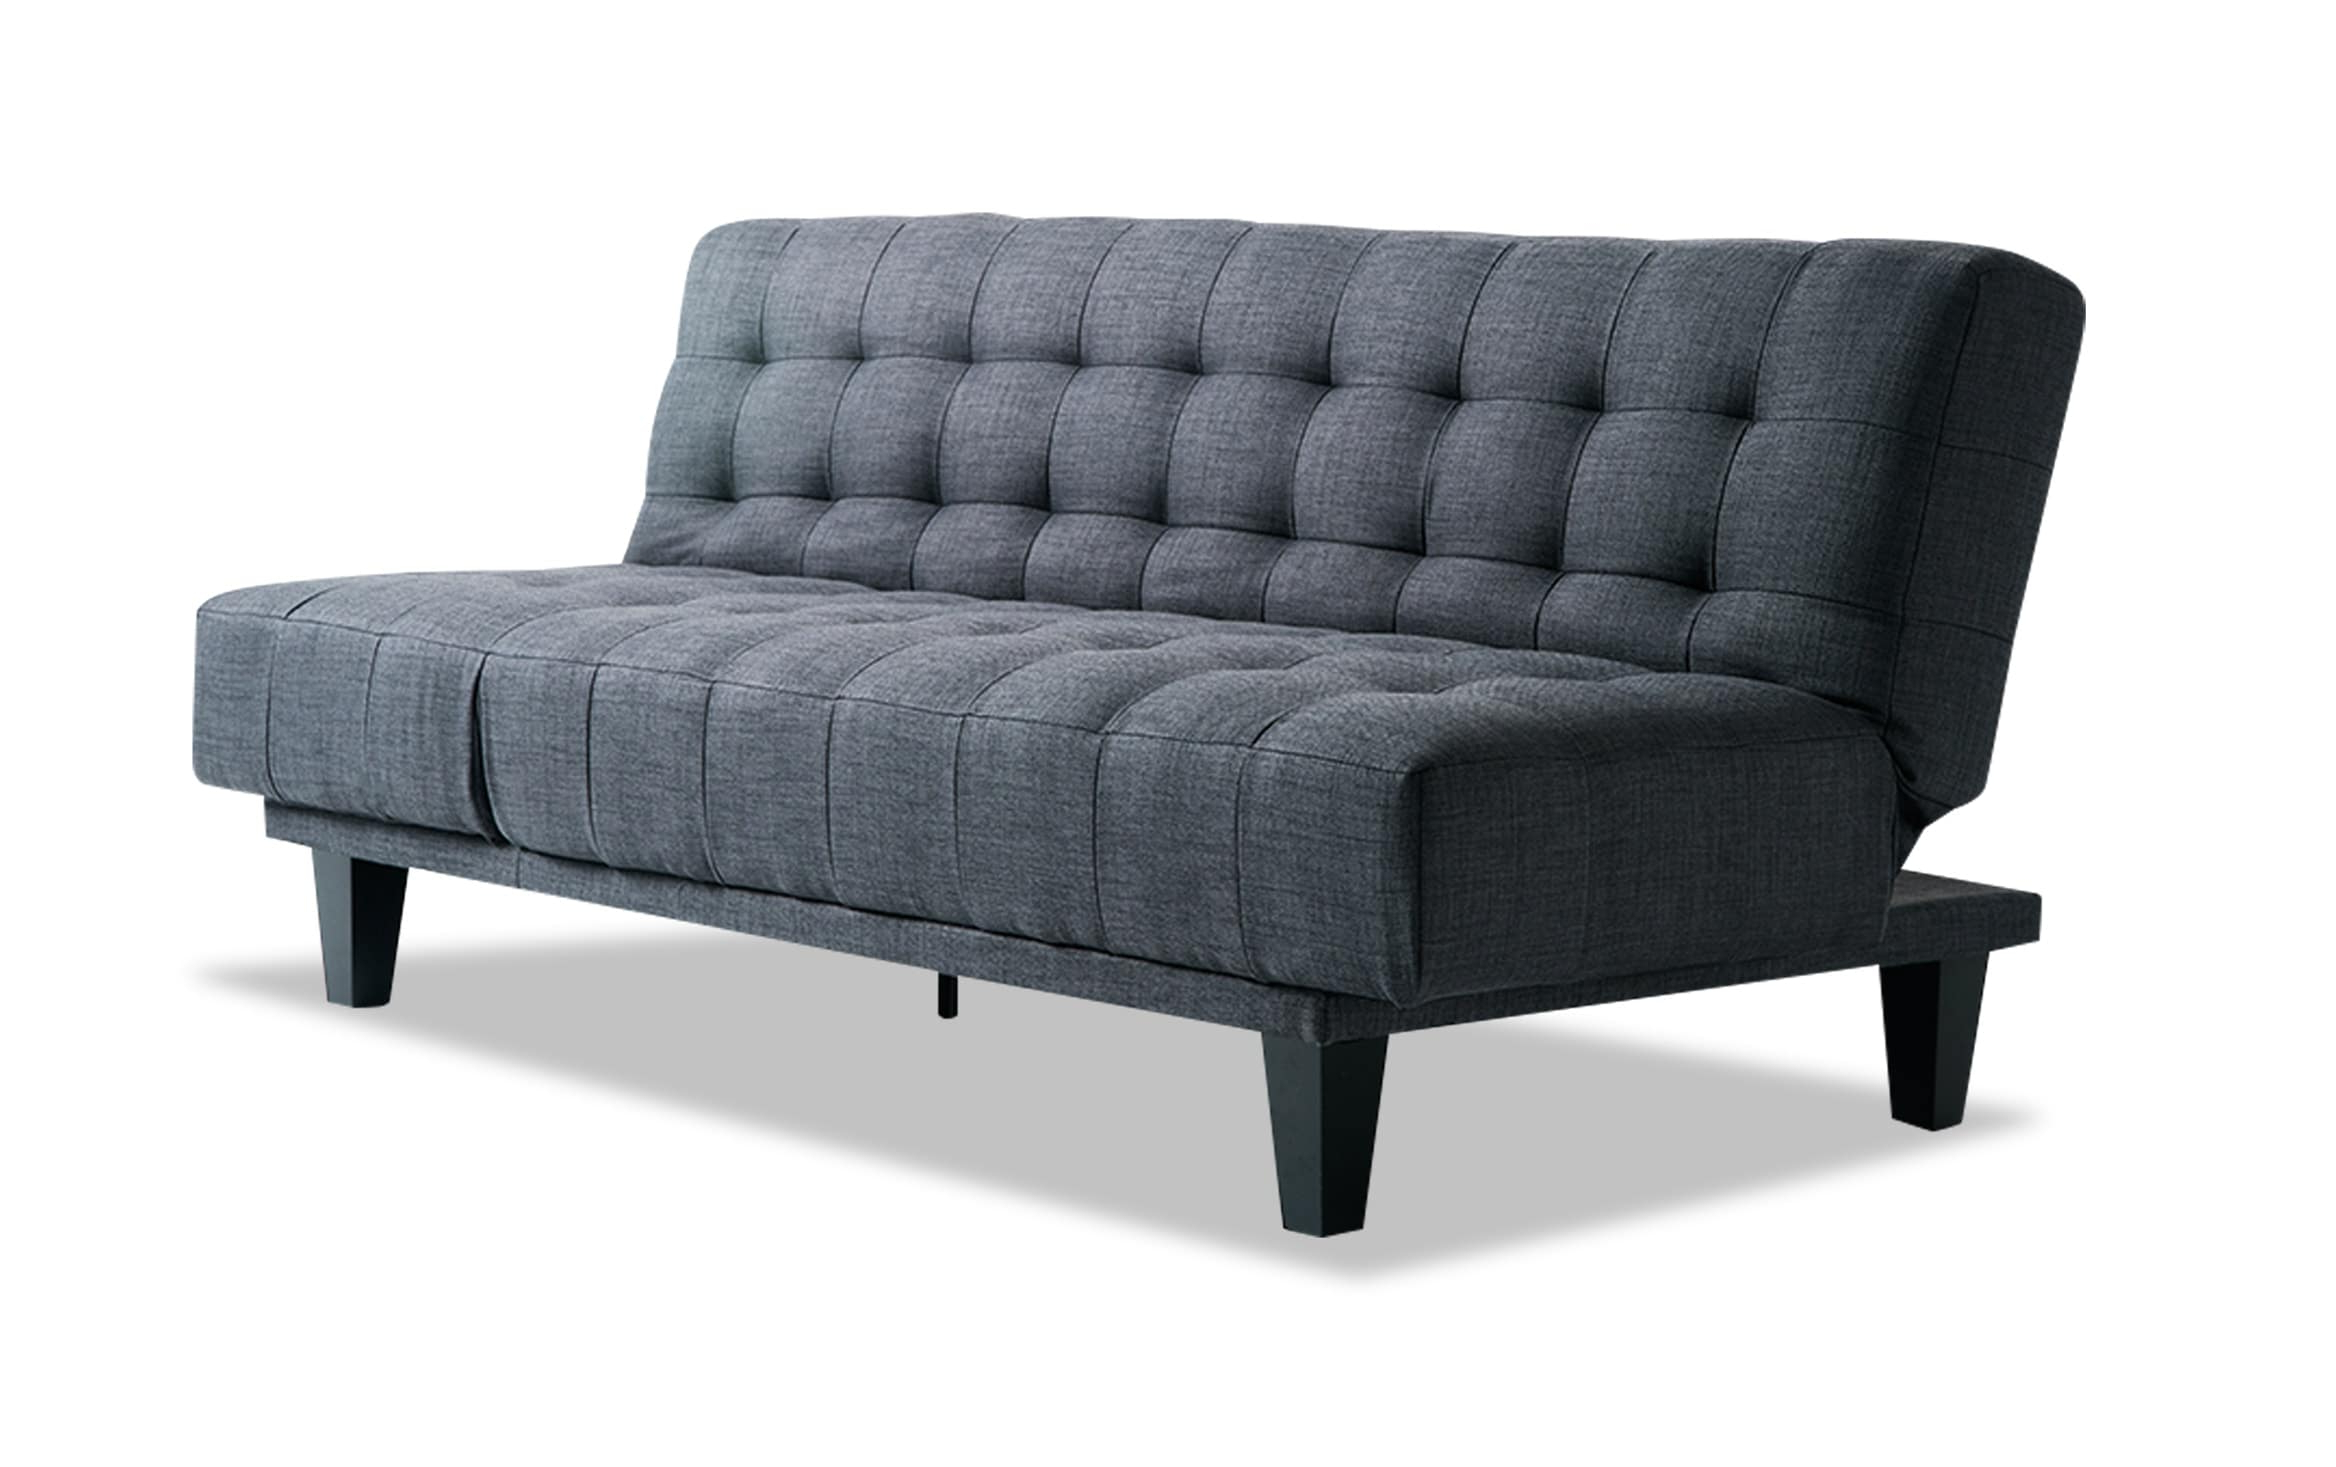 Antonio Light Gray Leather Sofas Throughout Current Bobs Furniture Futon Bed (View 9 of 20)